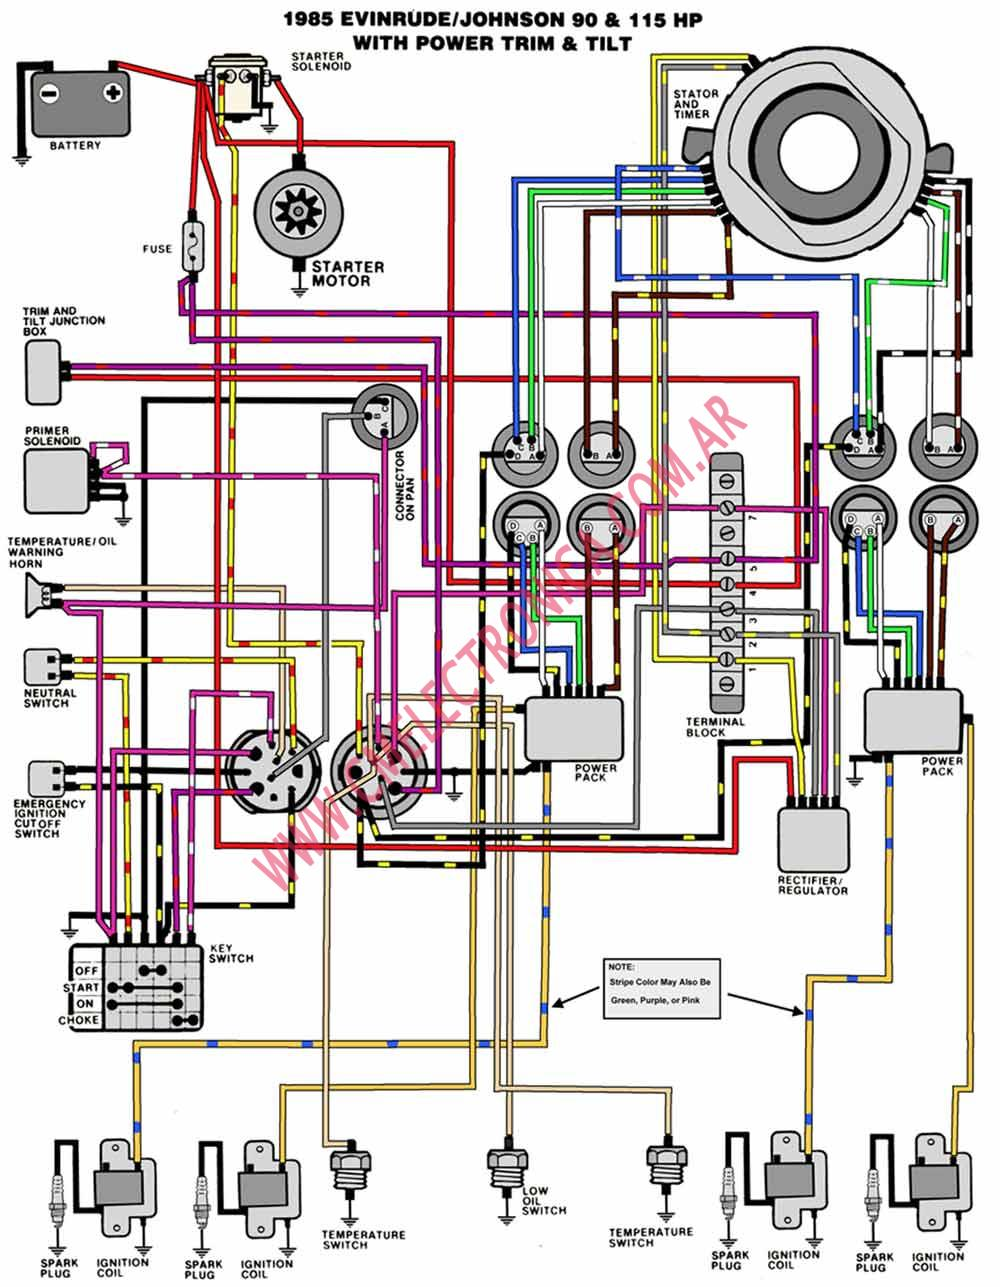 diagrama evinrude johnson 1985 90 115 tnt 2 115 hp johnson outboard wiring  diagram 1975 johnson